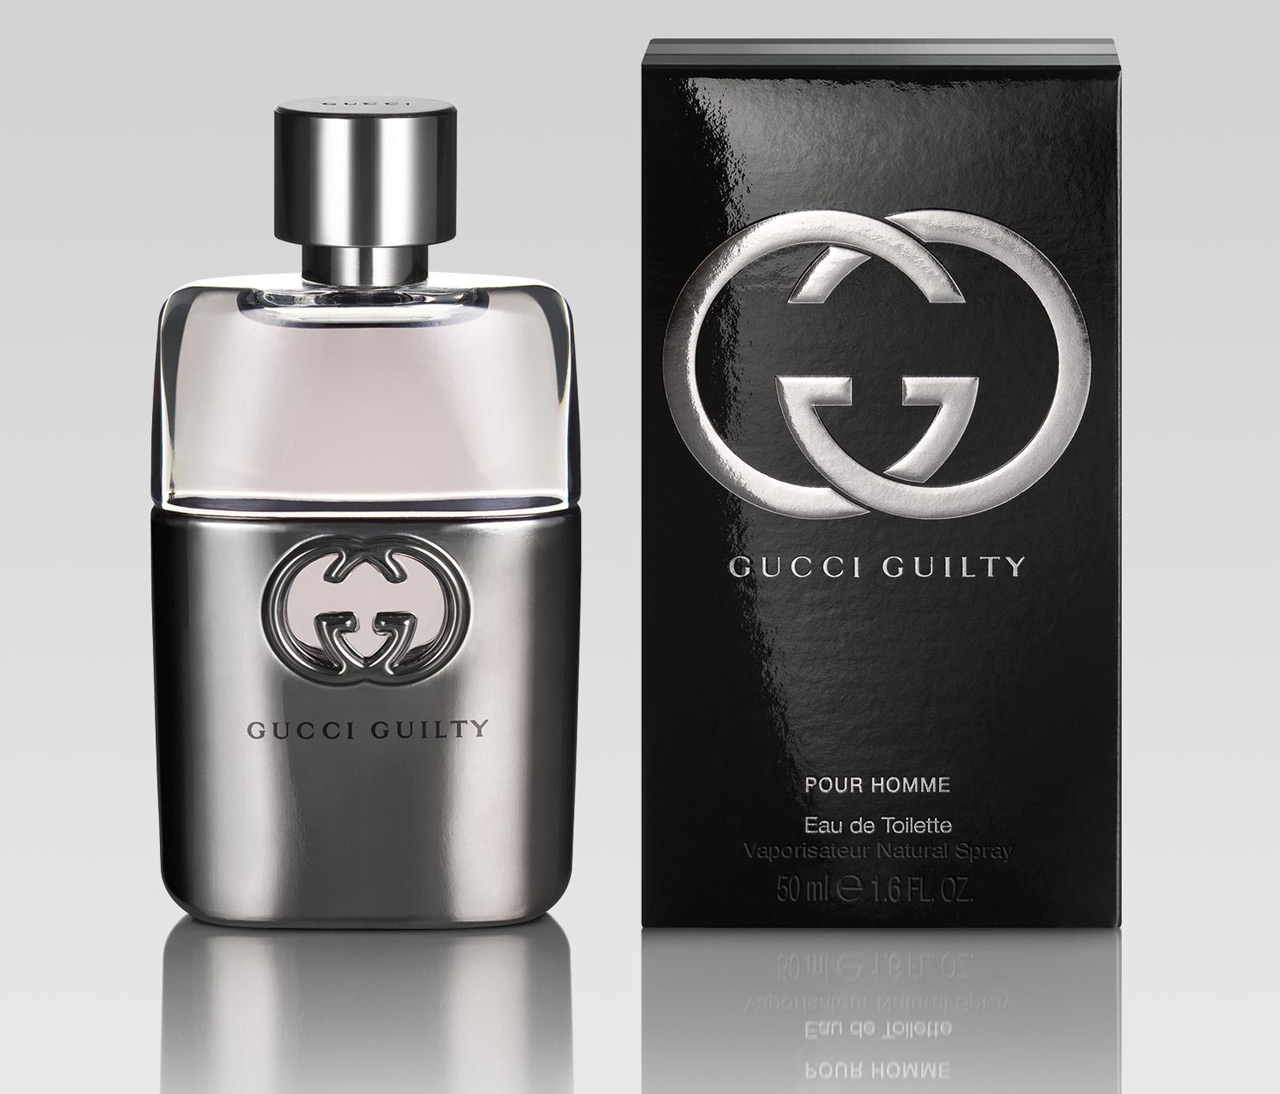 Top 10 Most Seductive Best Men Perfumes of all Time - List of Hot Selling Brands  (1)